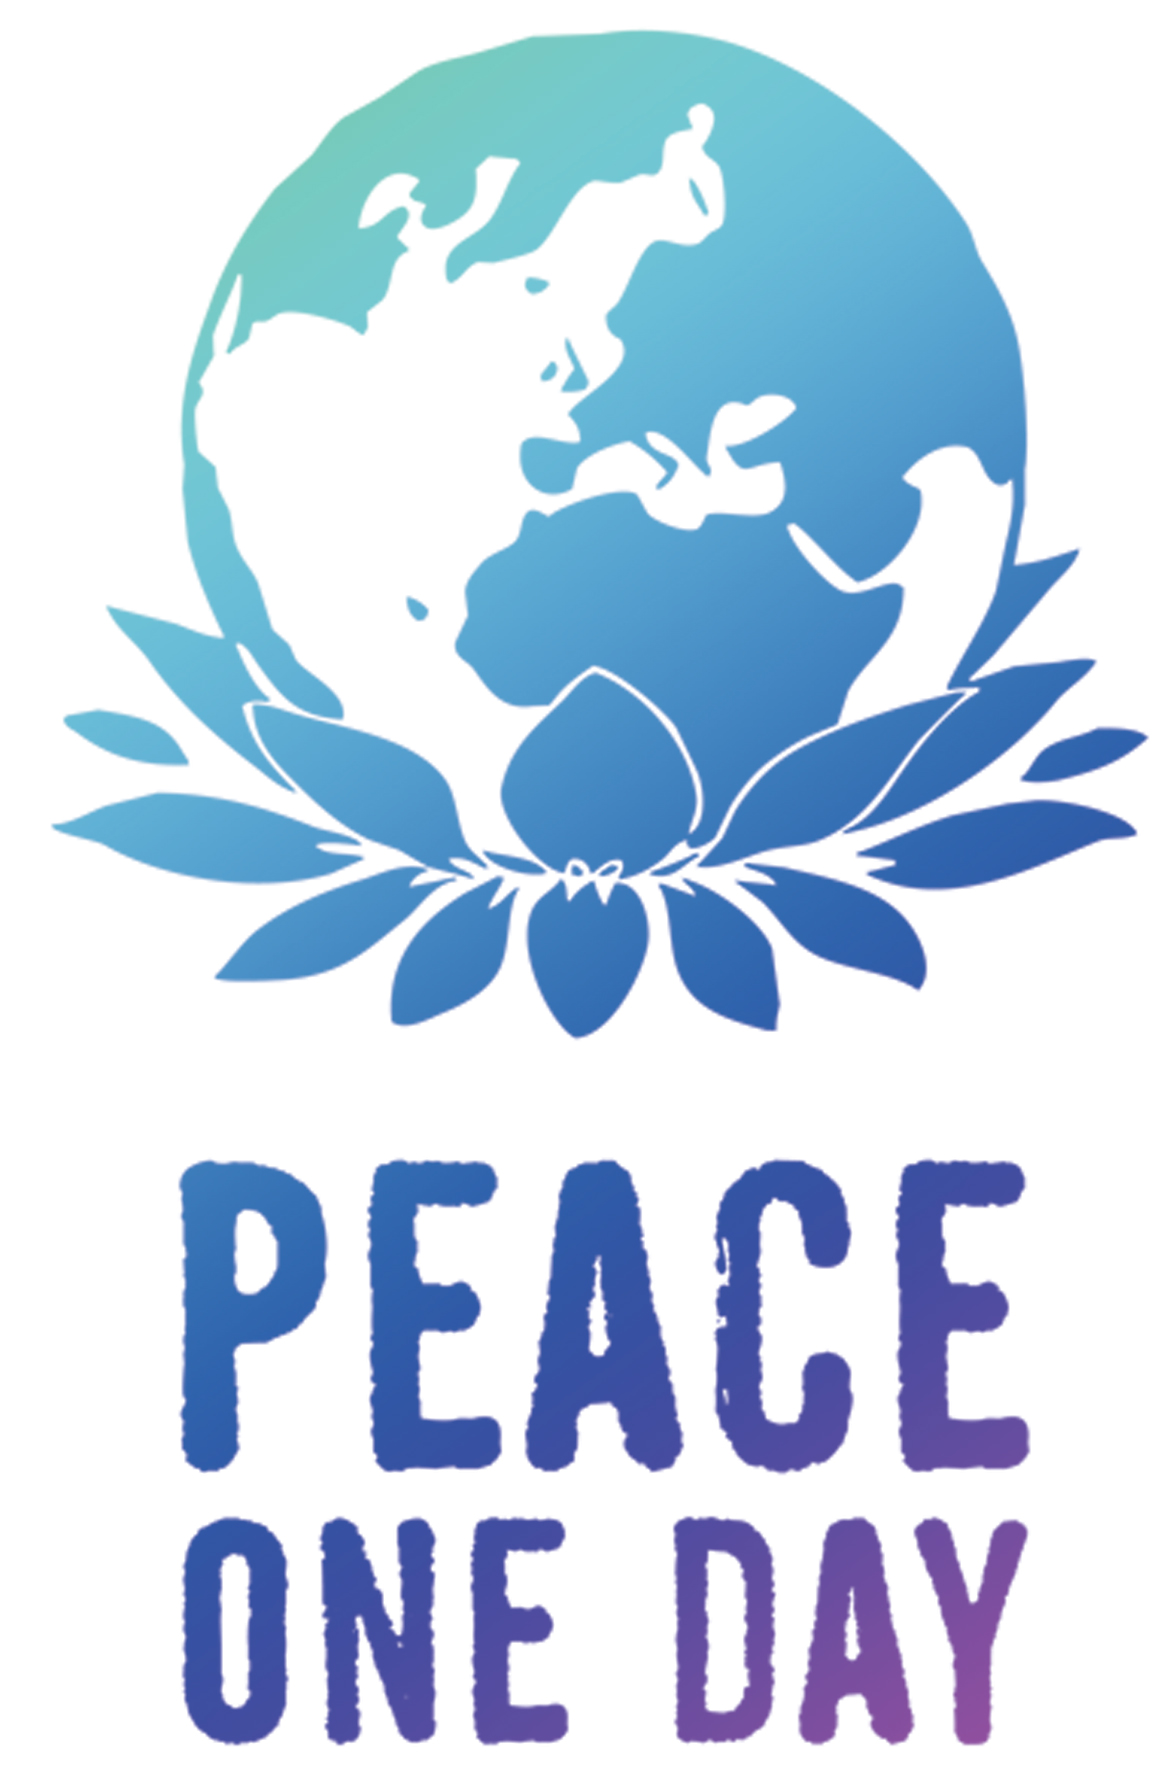 peace_one_day.jpg